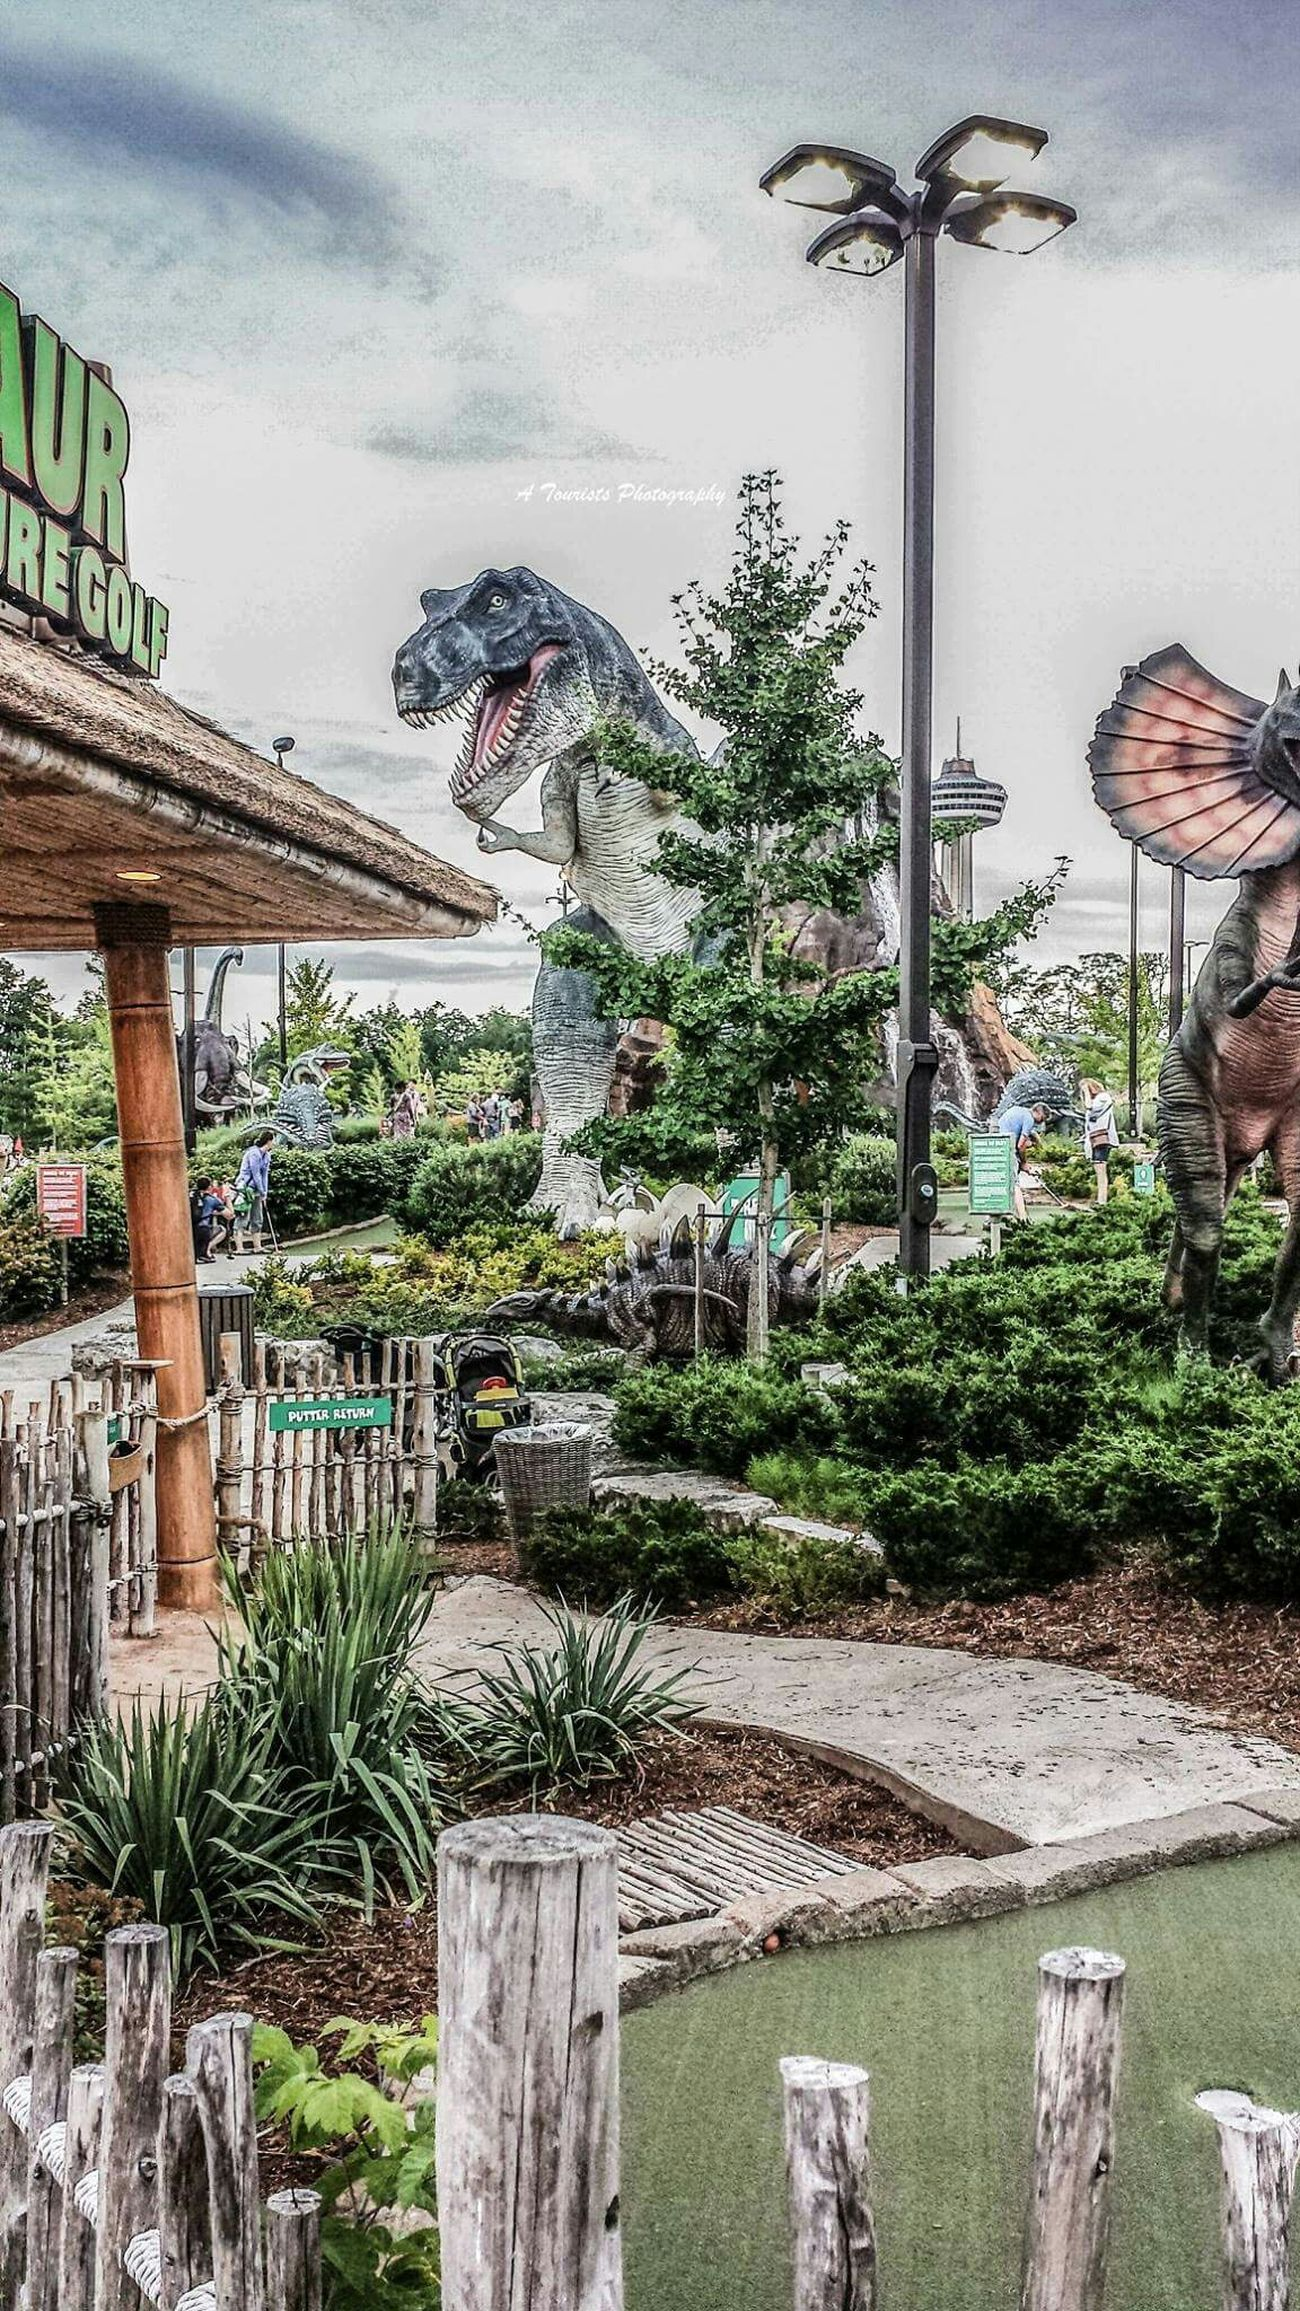 A Tourist's Photography TRex  Tyrannosaurusrex Dino Dinosaur Theatrical Panic Calm Scary Teeth Adventure Thrill Thriller Thrilling Park Beware